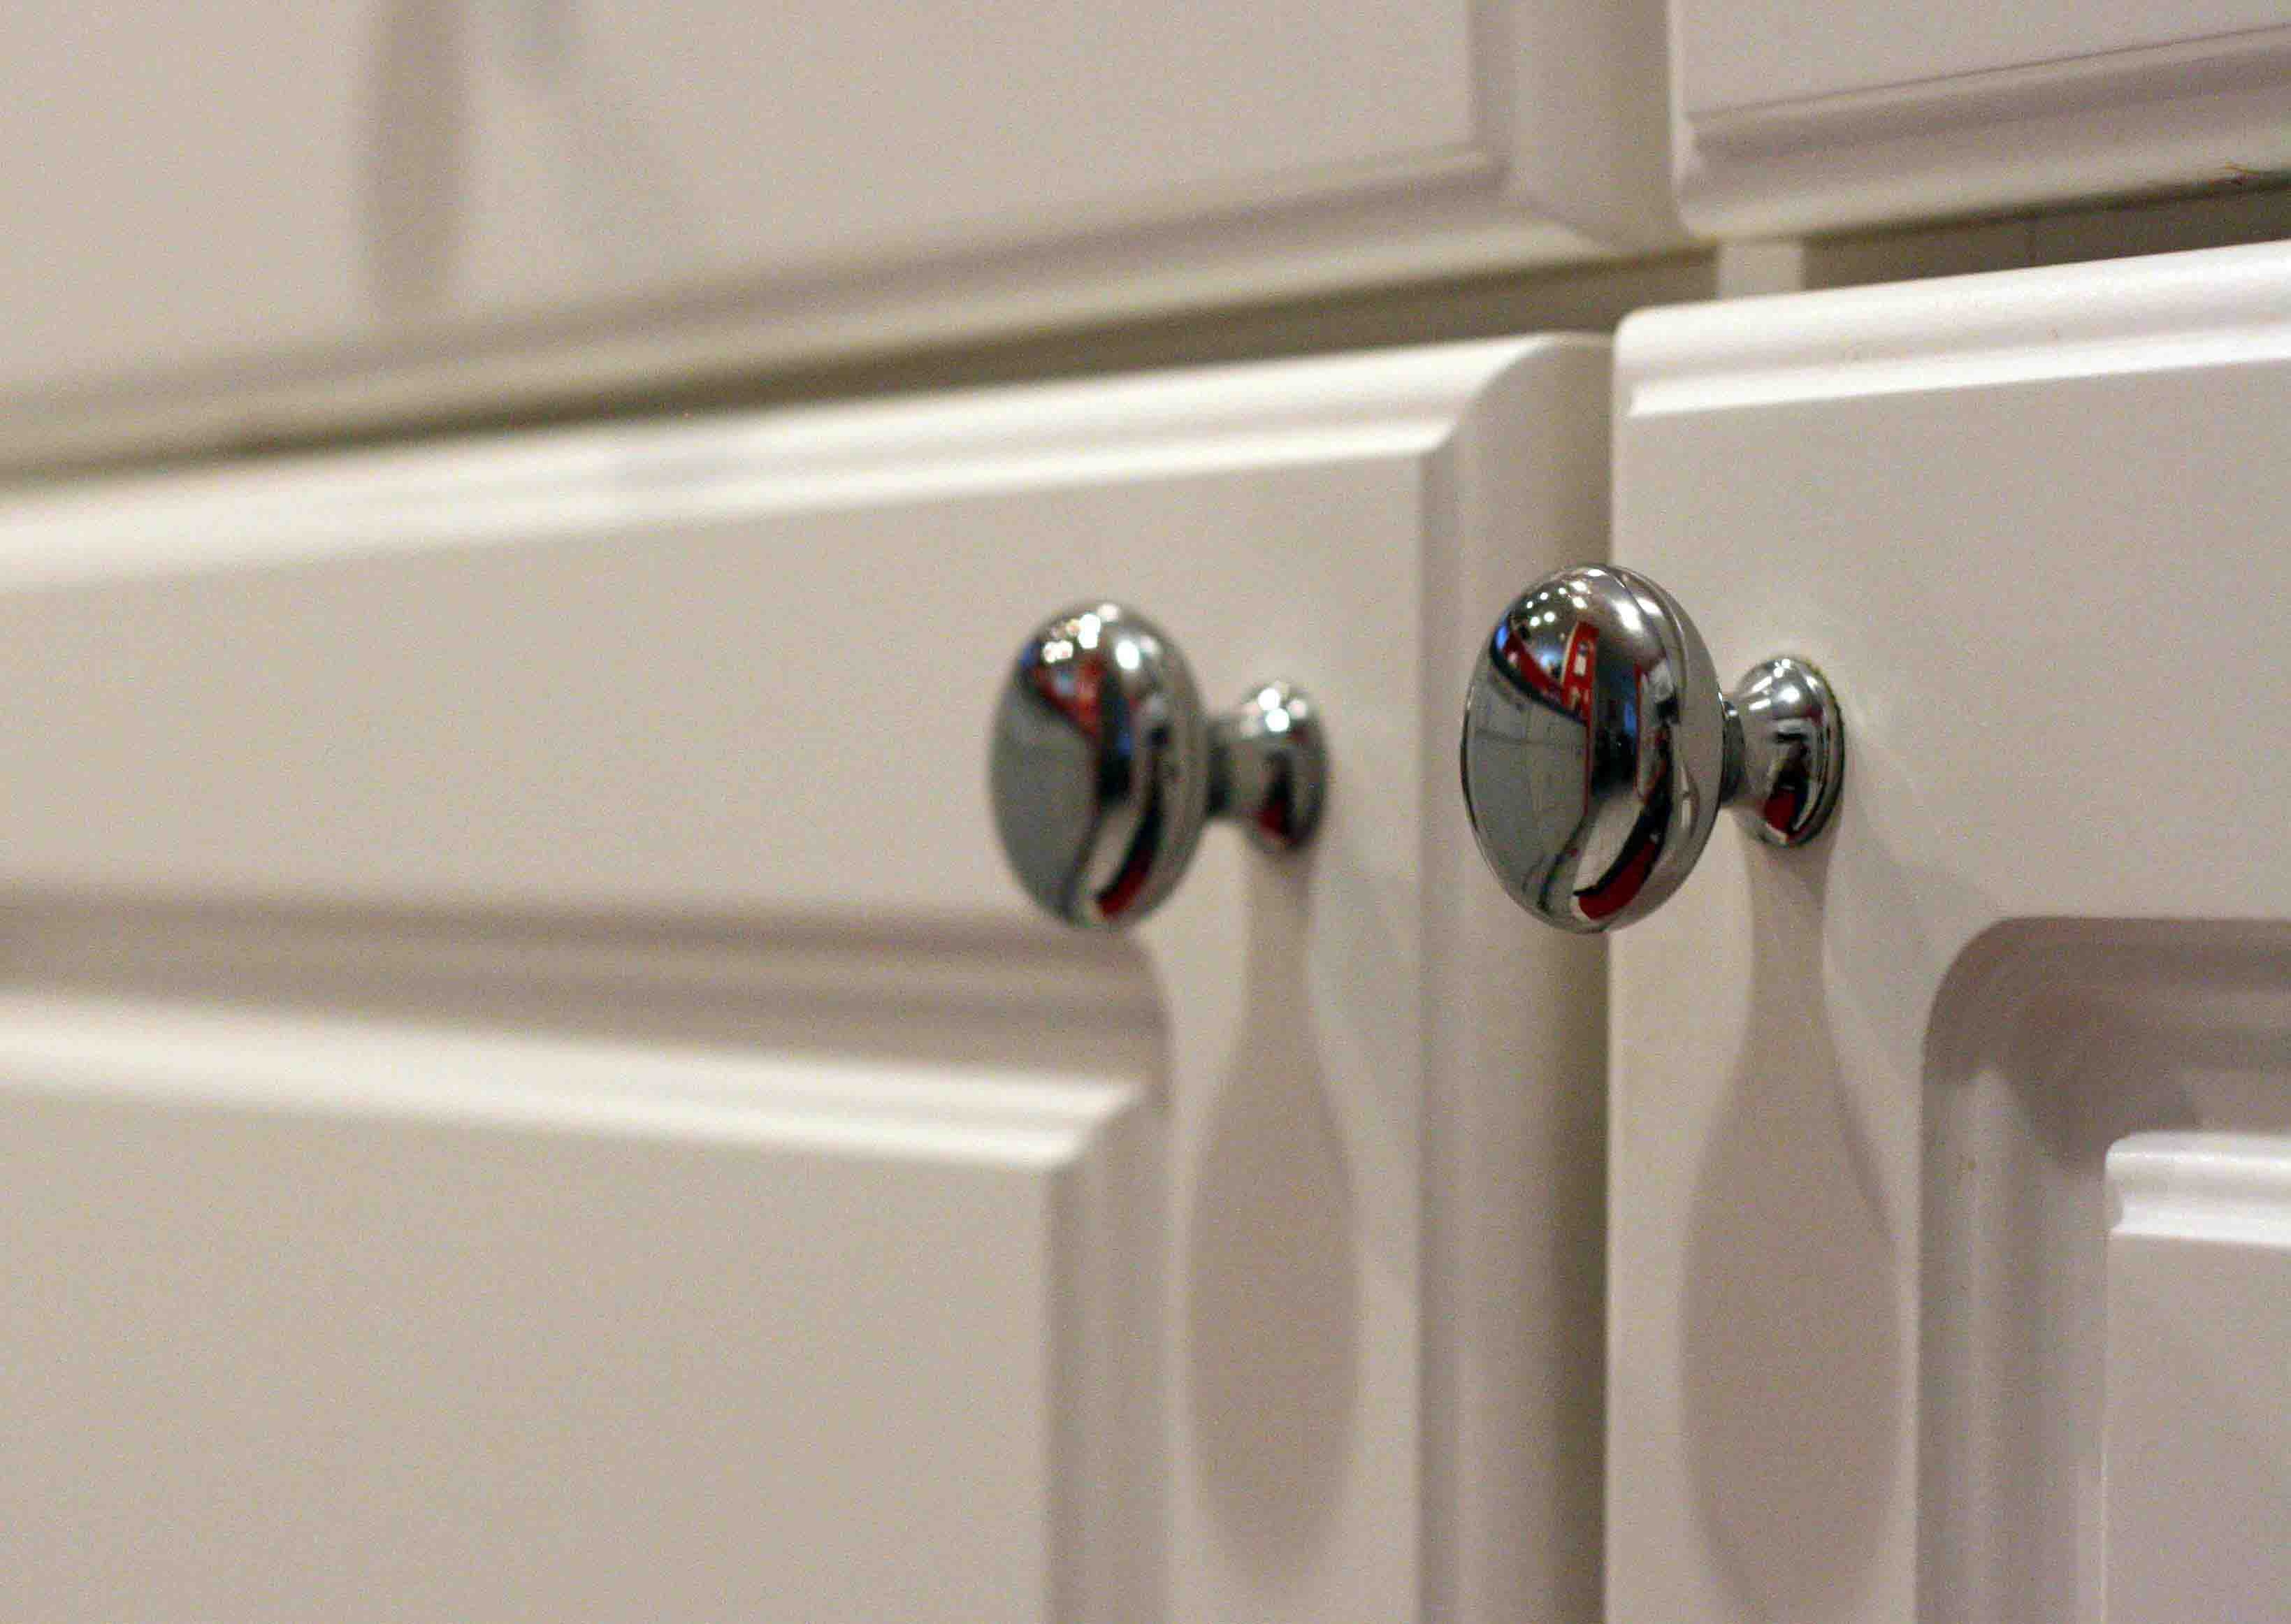 Bathroom Cupboard Door Handles3278 X 2324